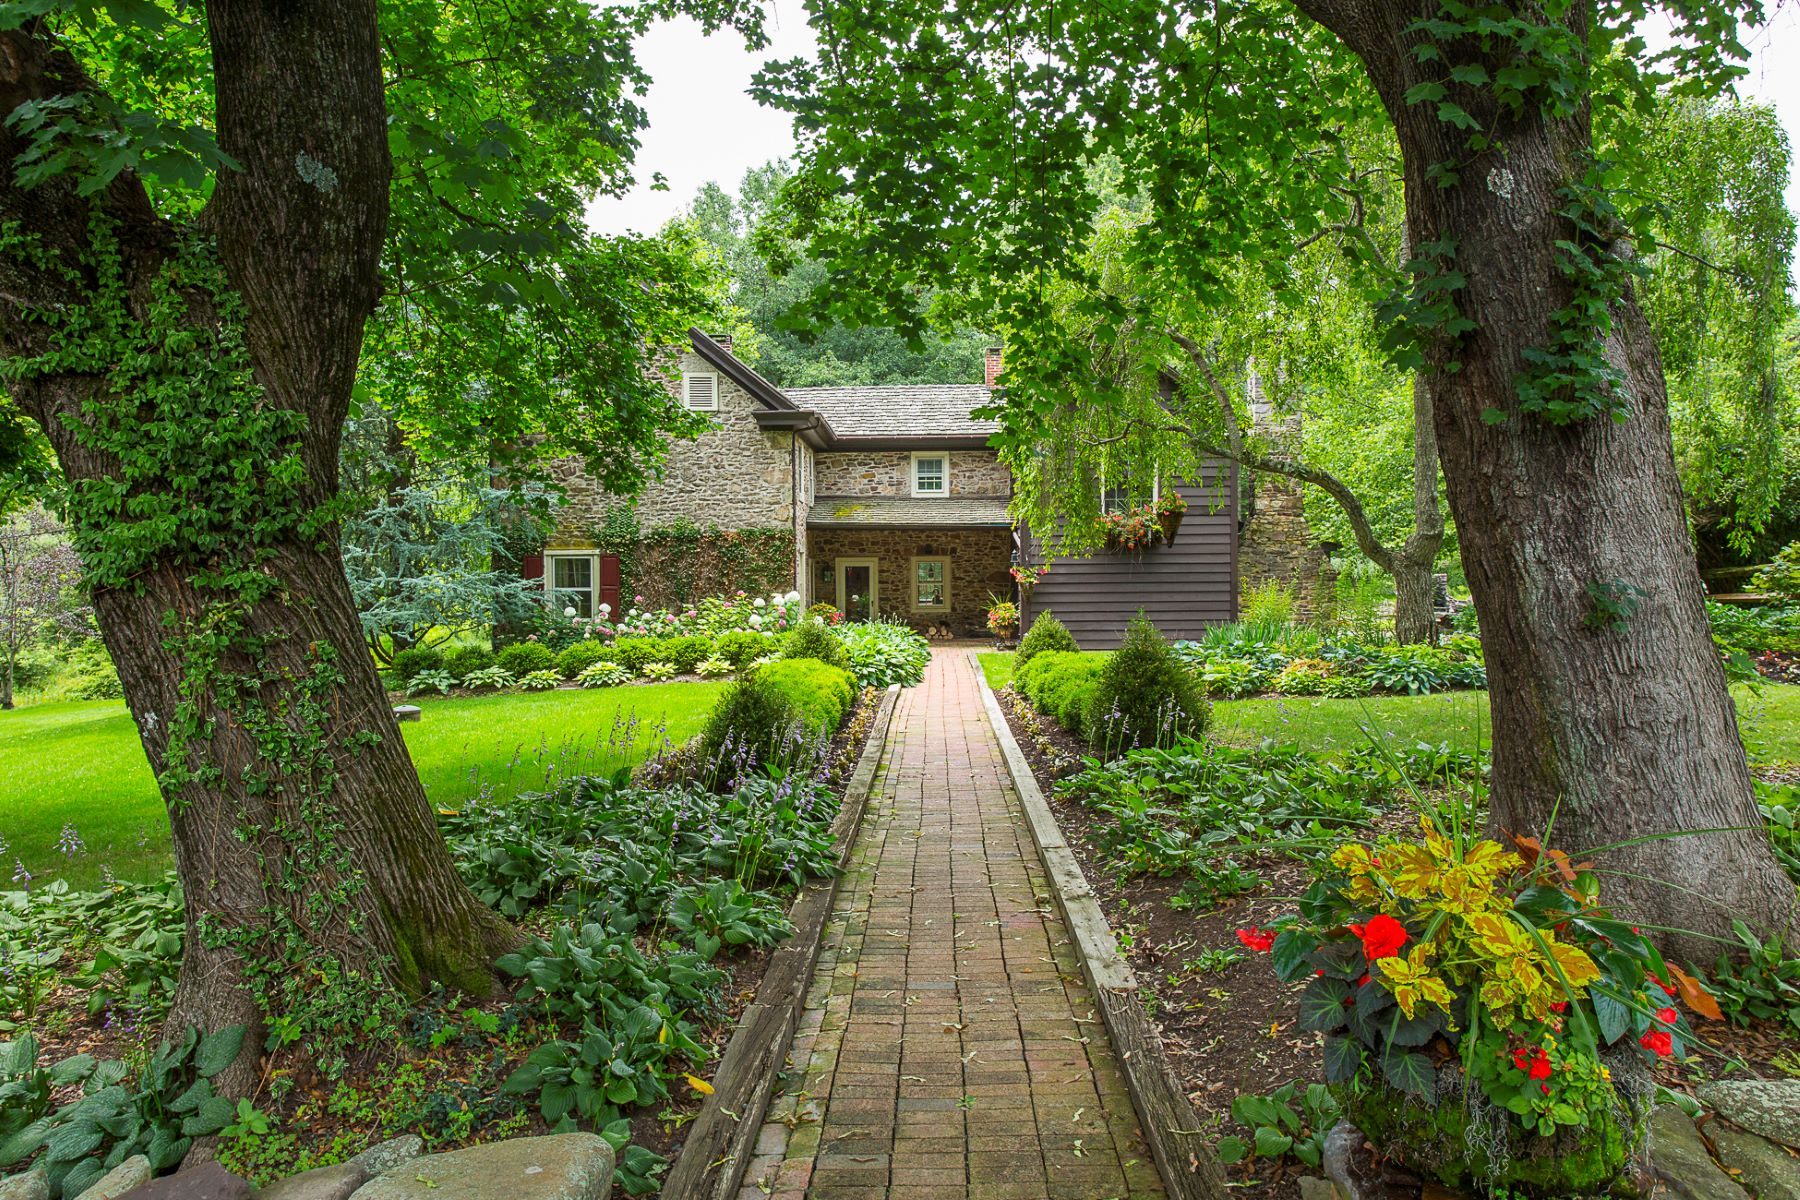 Additional photo for property listing at Serene Beauty in Pastoral Bucks County - Buckingham Township 5694 Carversville Road A, Carversville, Pennsylvania 18902 United States